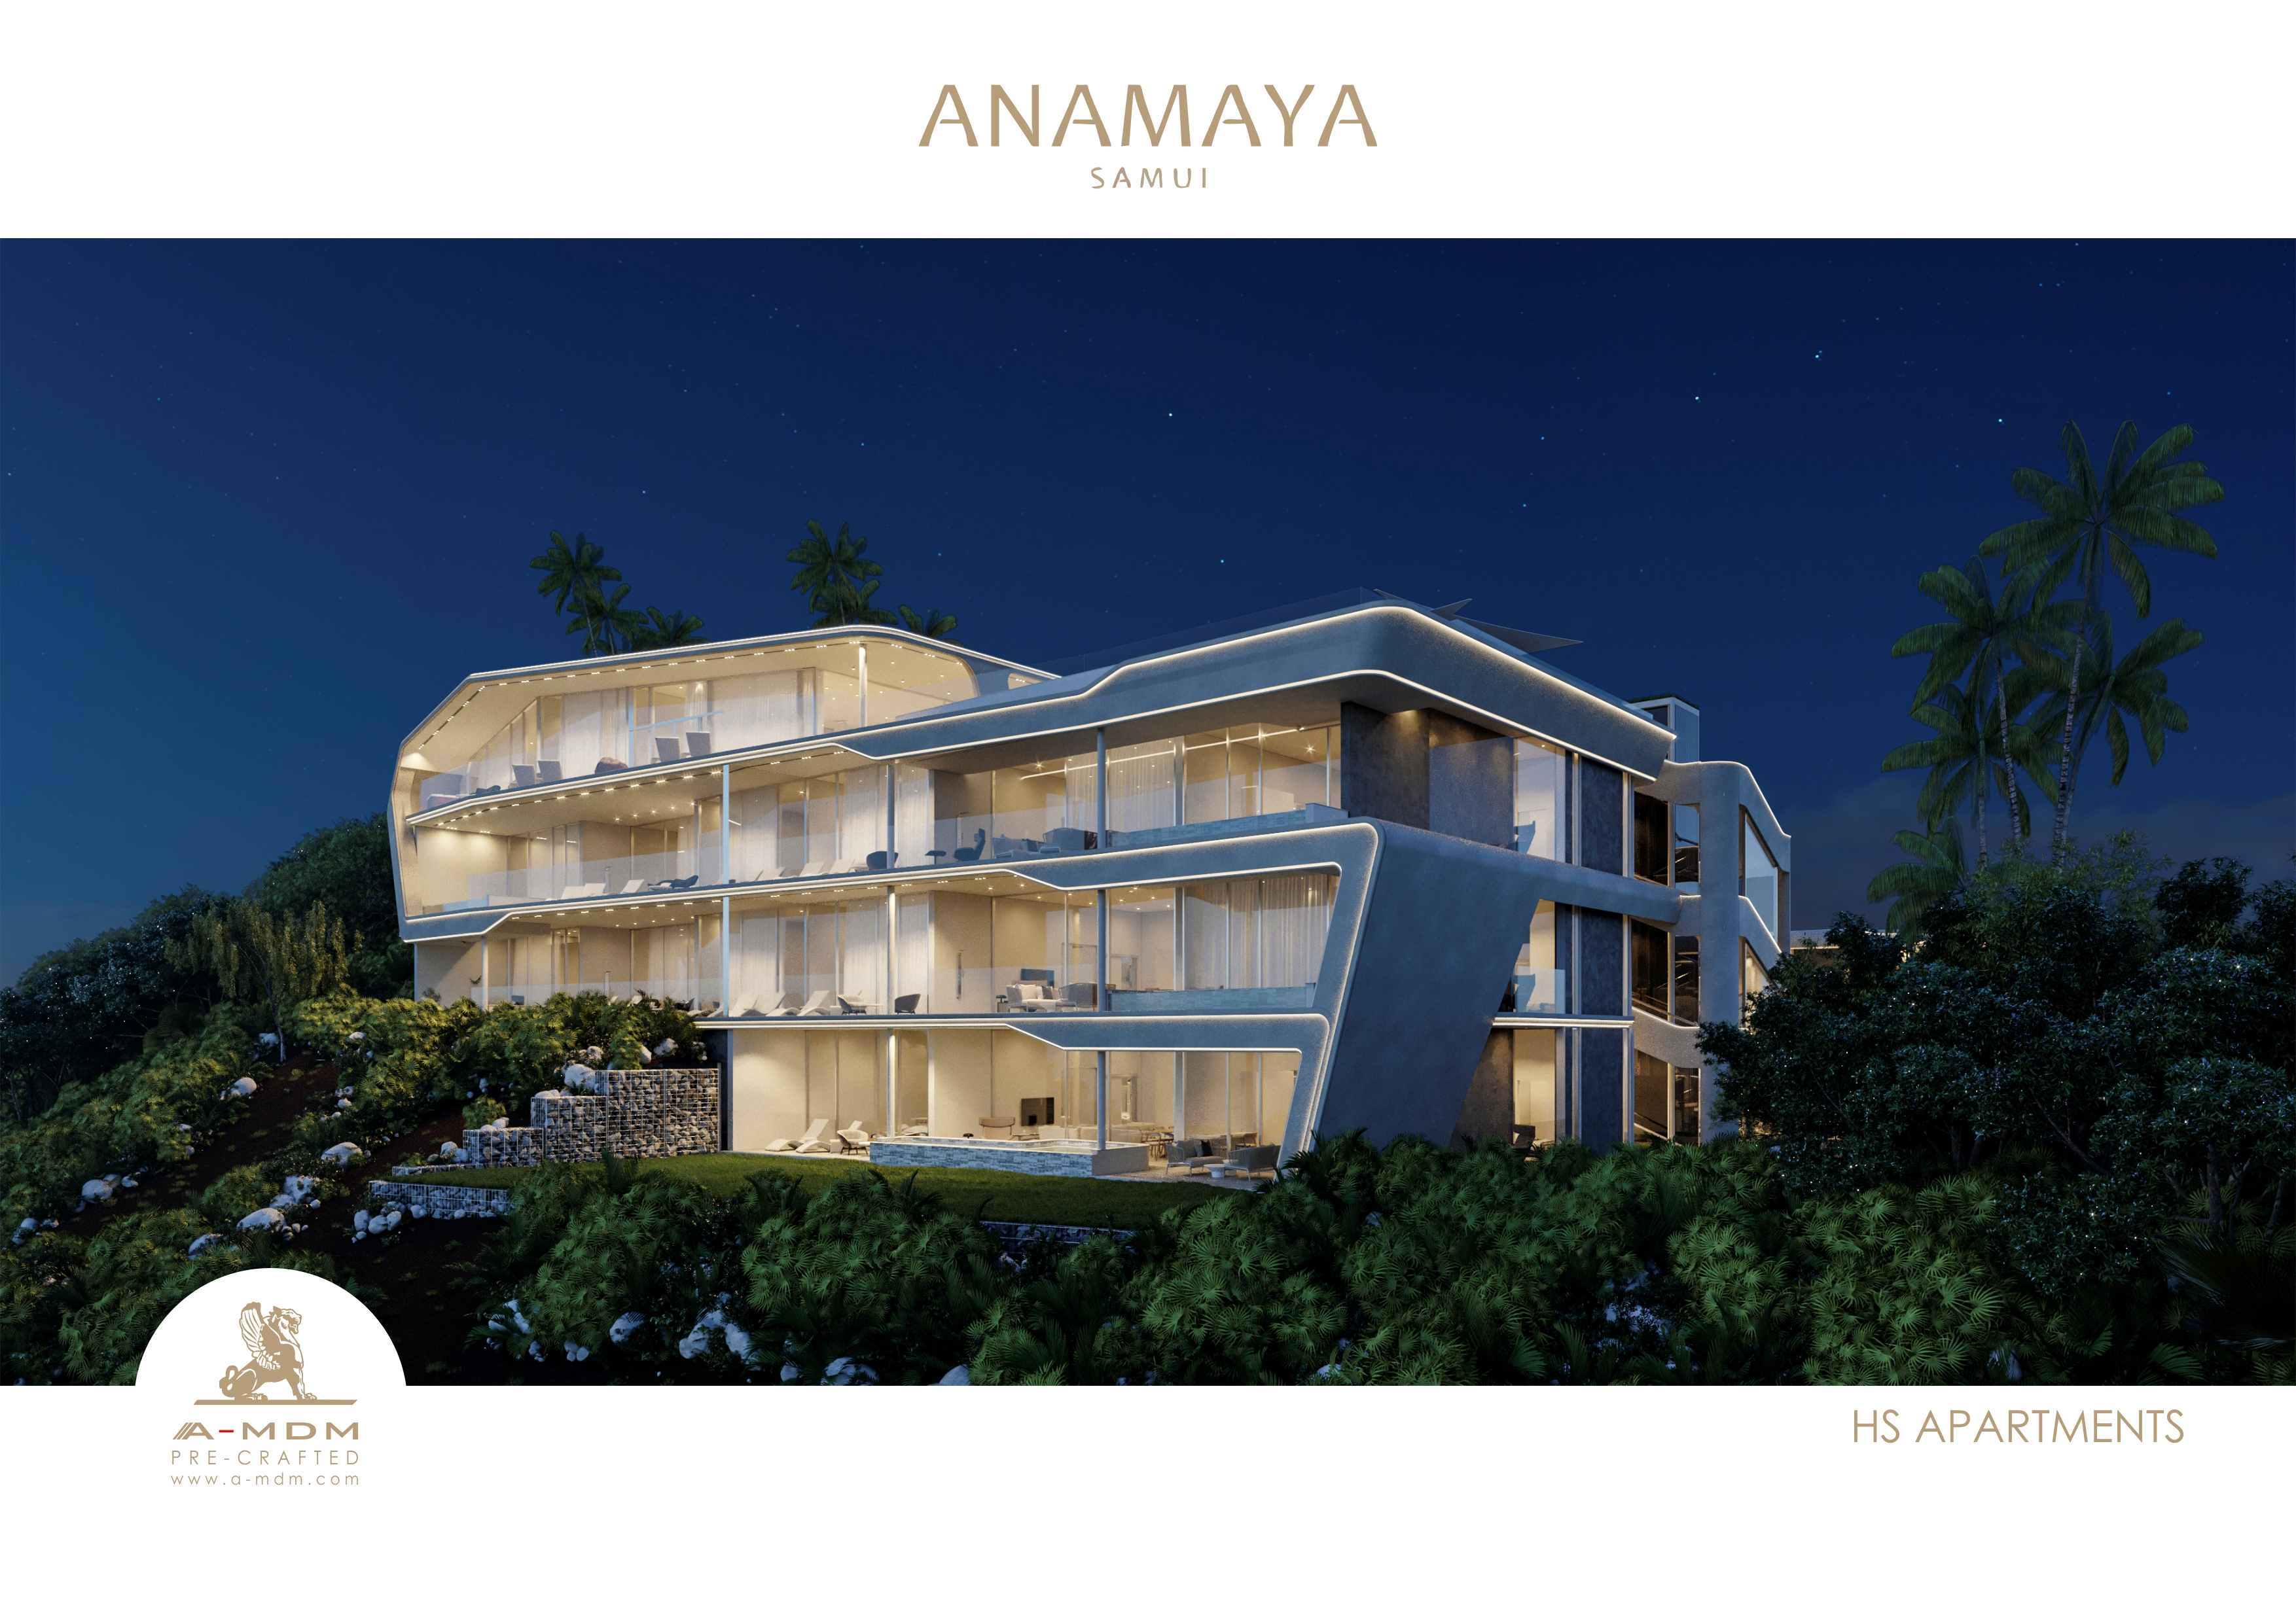 ANAMAYA G WEST.HS APARTMENTS. VIEW 3